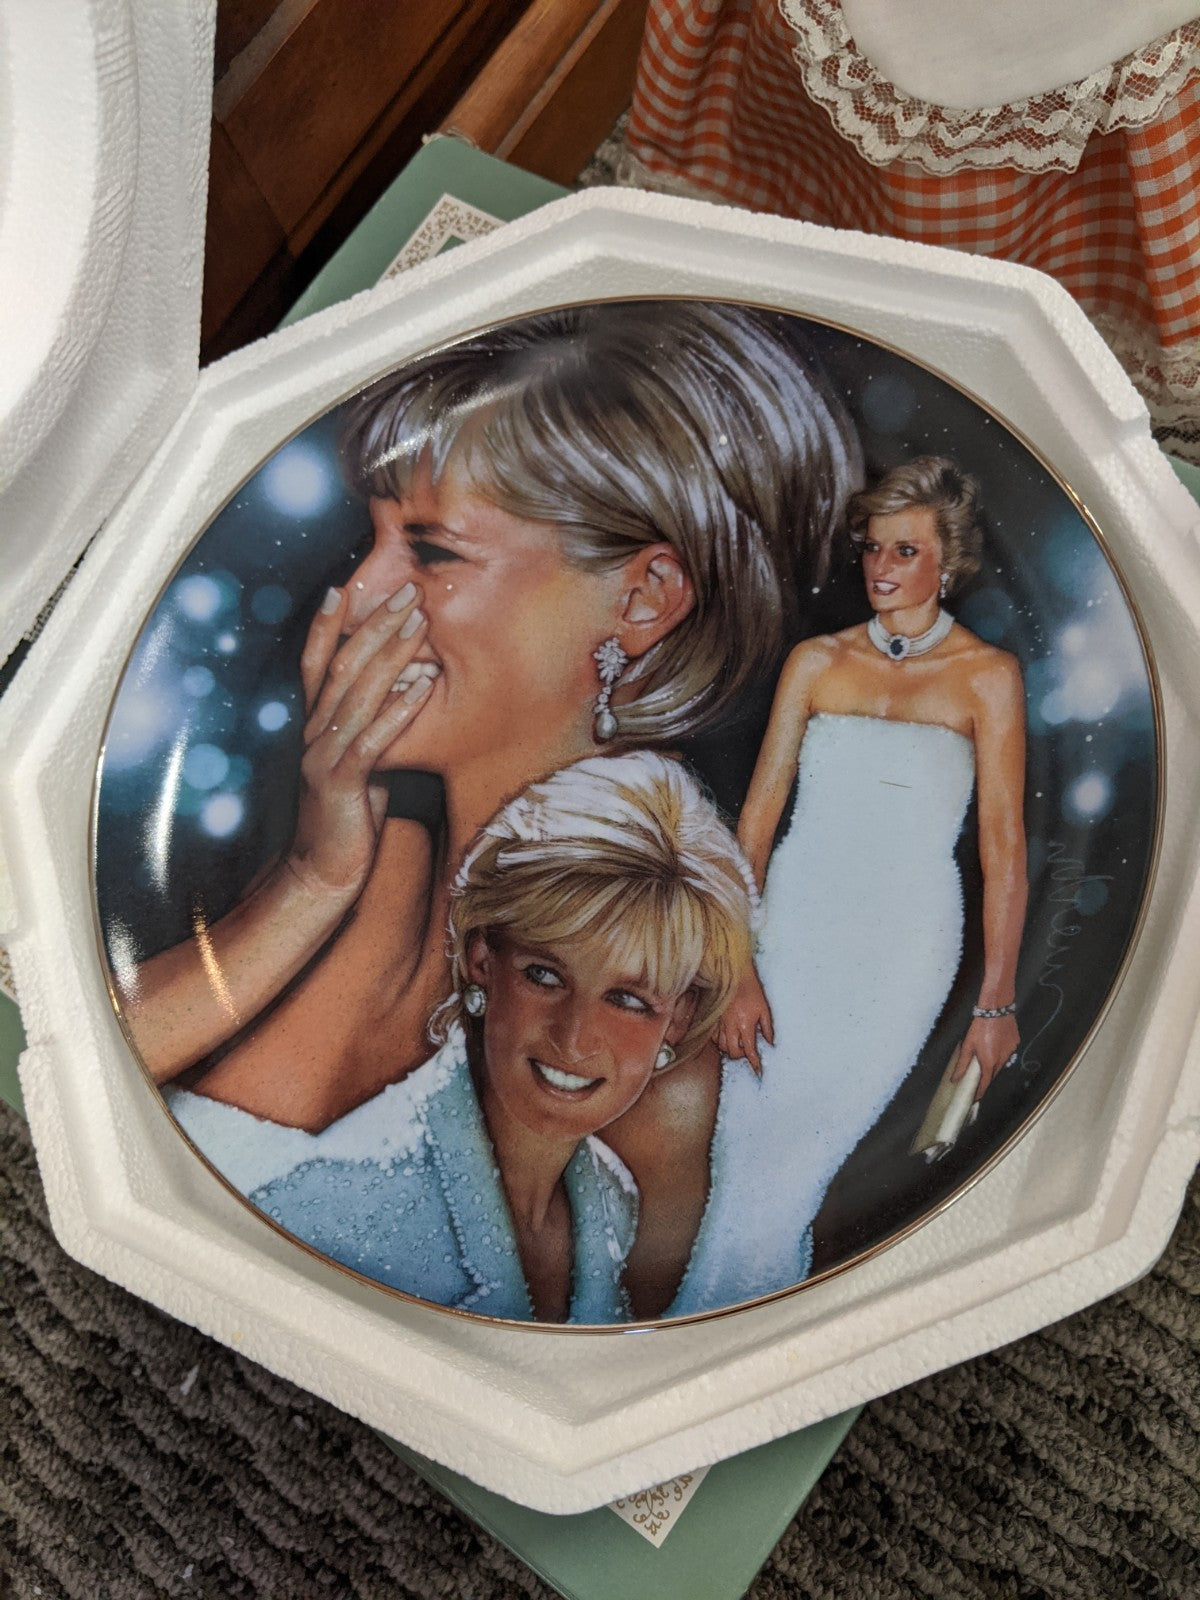 Franklin Mint Diana, Princess of Wales heirloom decorative plate #HB2412